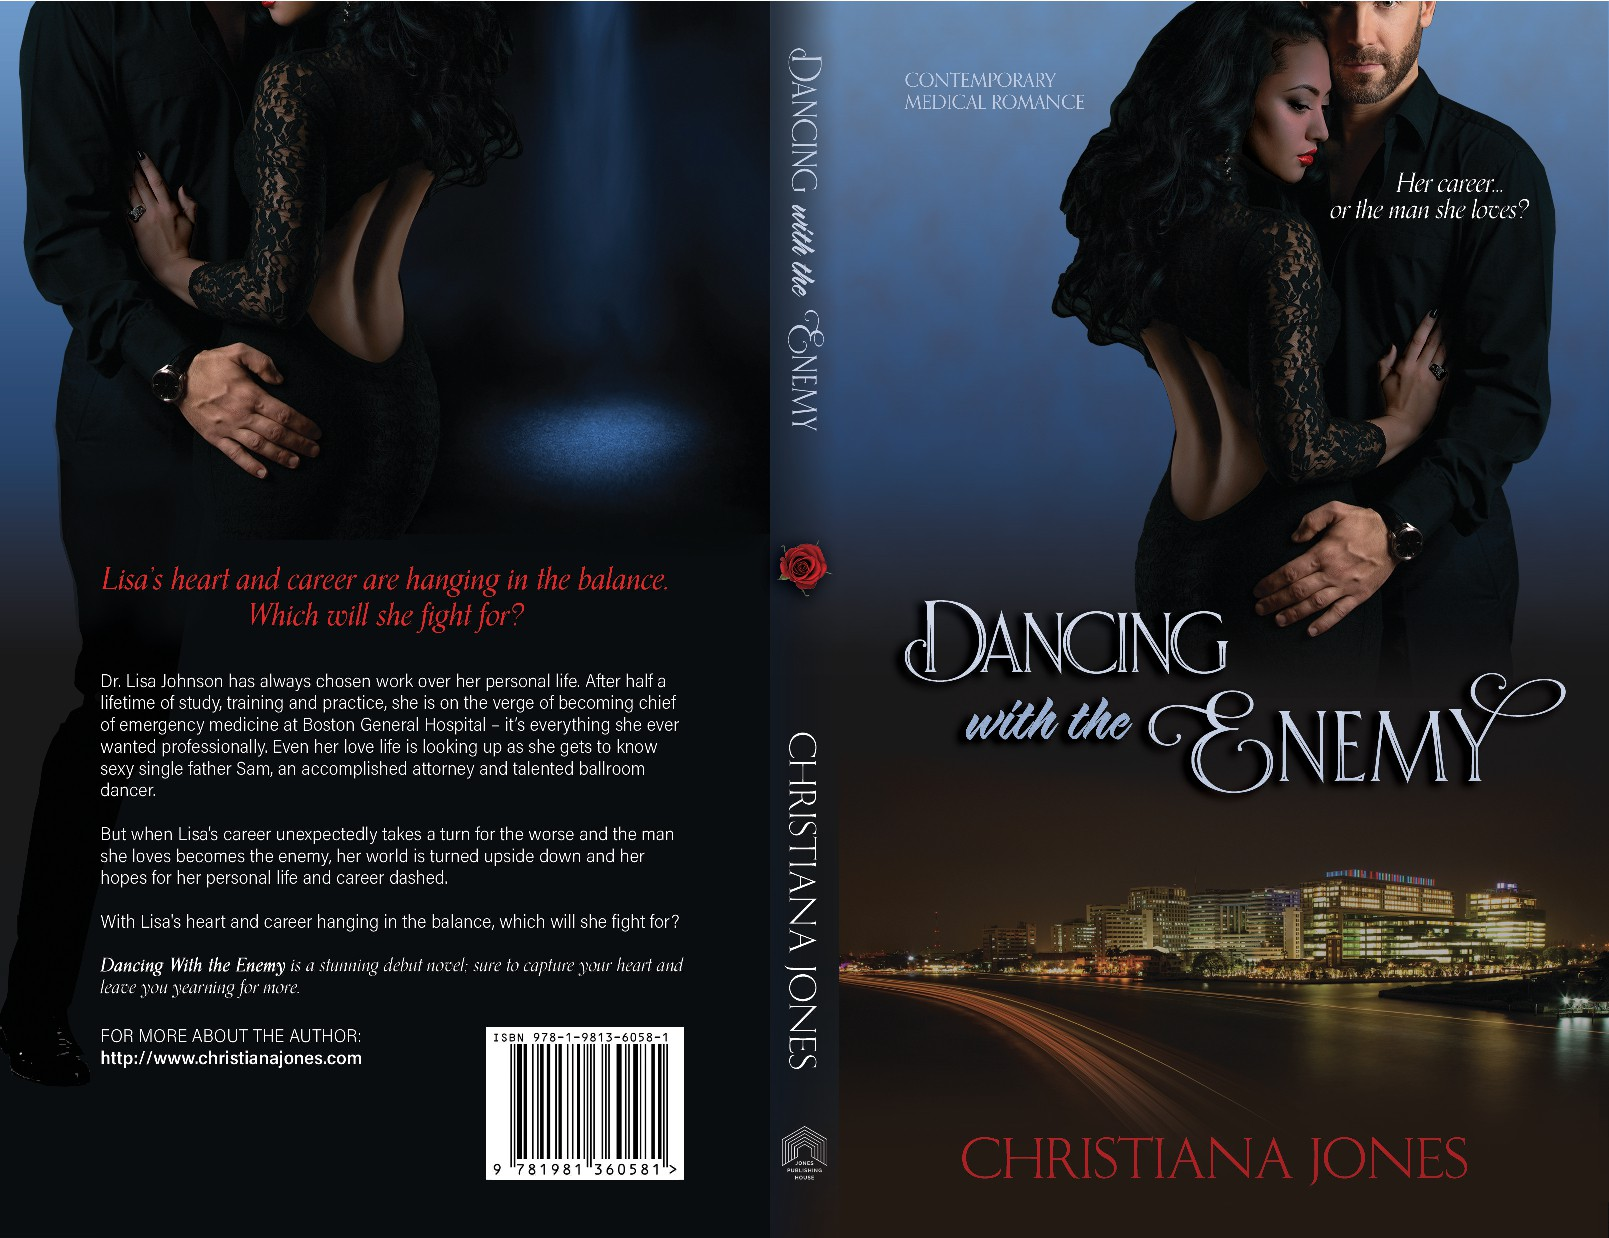 Design cover for Dancing with the Enemy - Romantic Comedy Novel